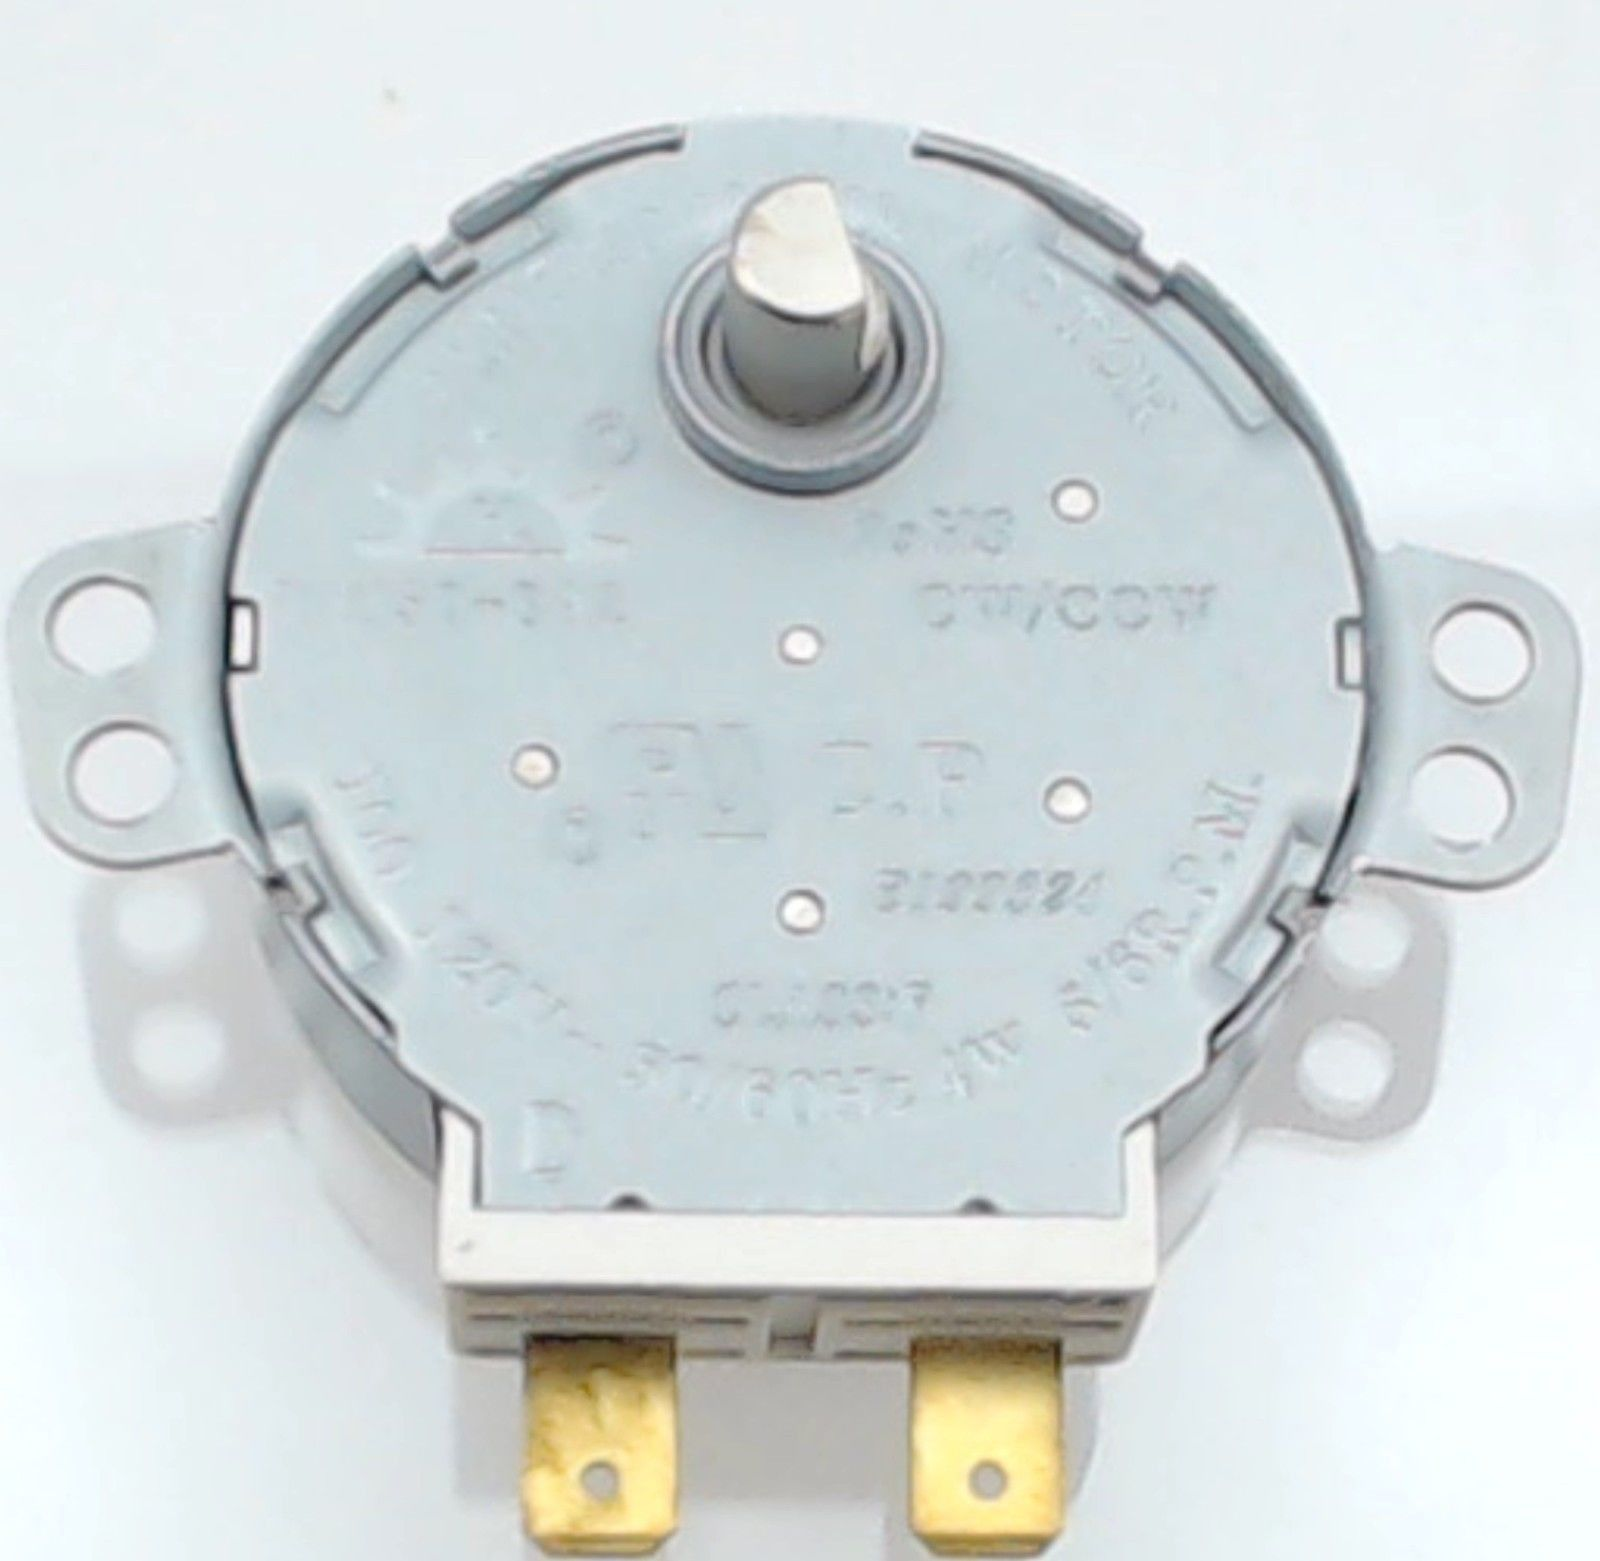 Microwave turntable motor for whirlpool sears ap3130796 ps391978 8183954 ebay - Kitchenaid microwave turntable replacement ...